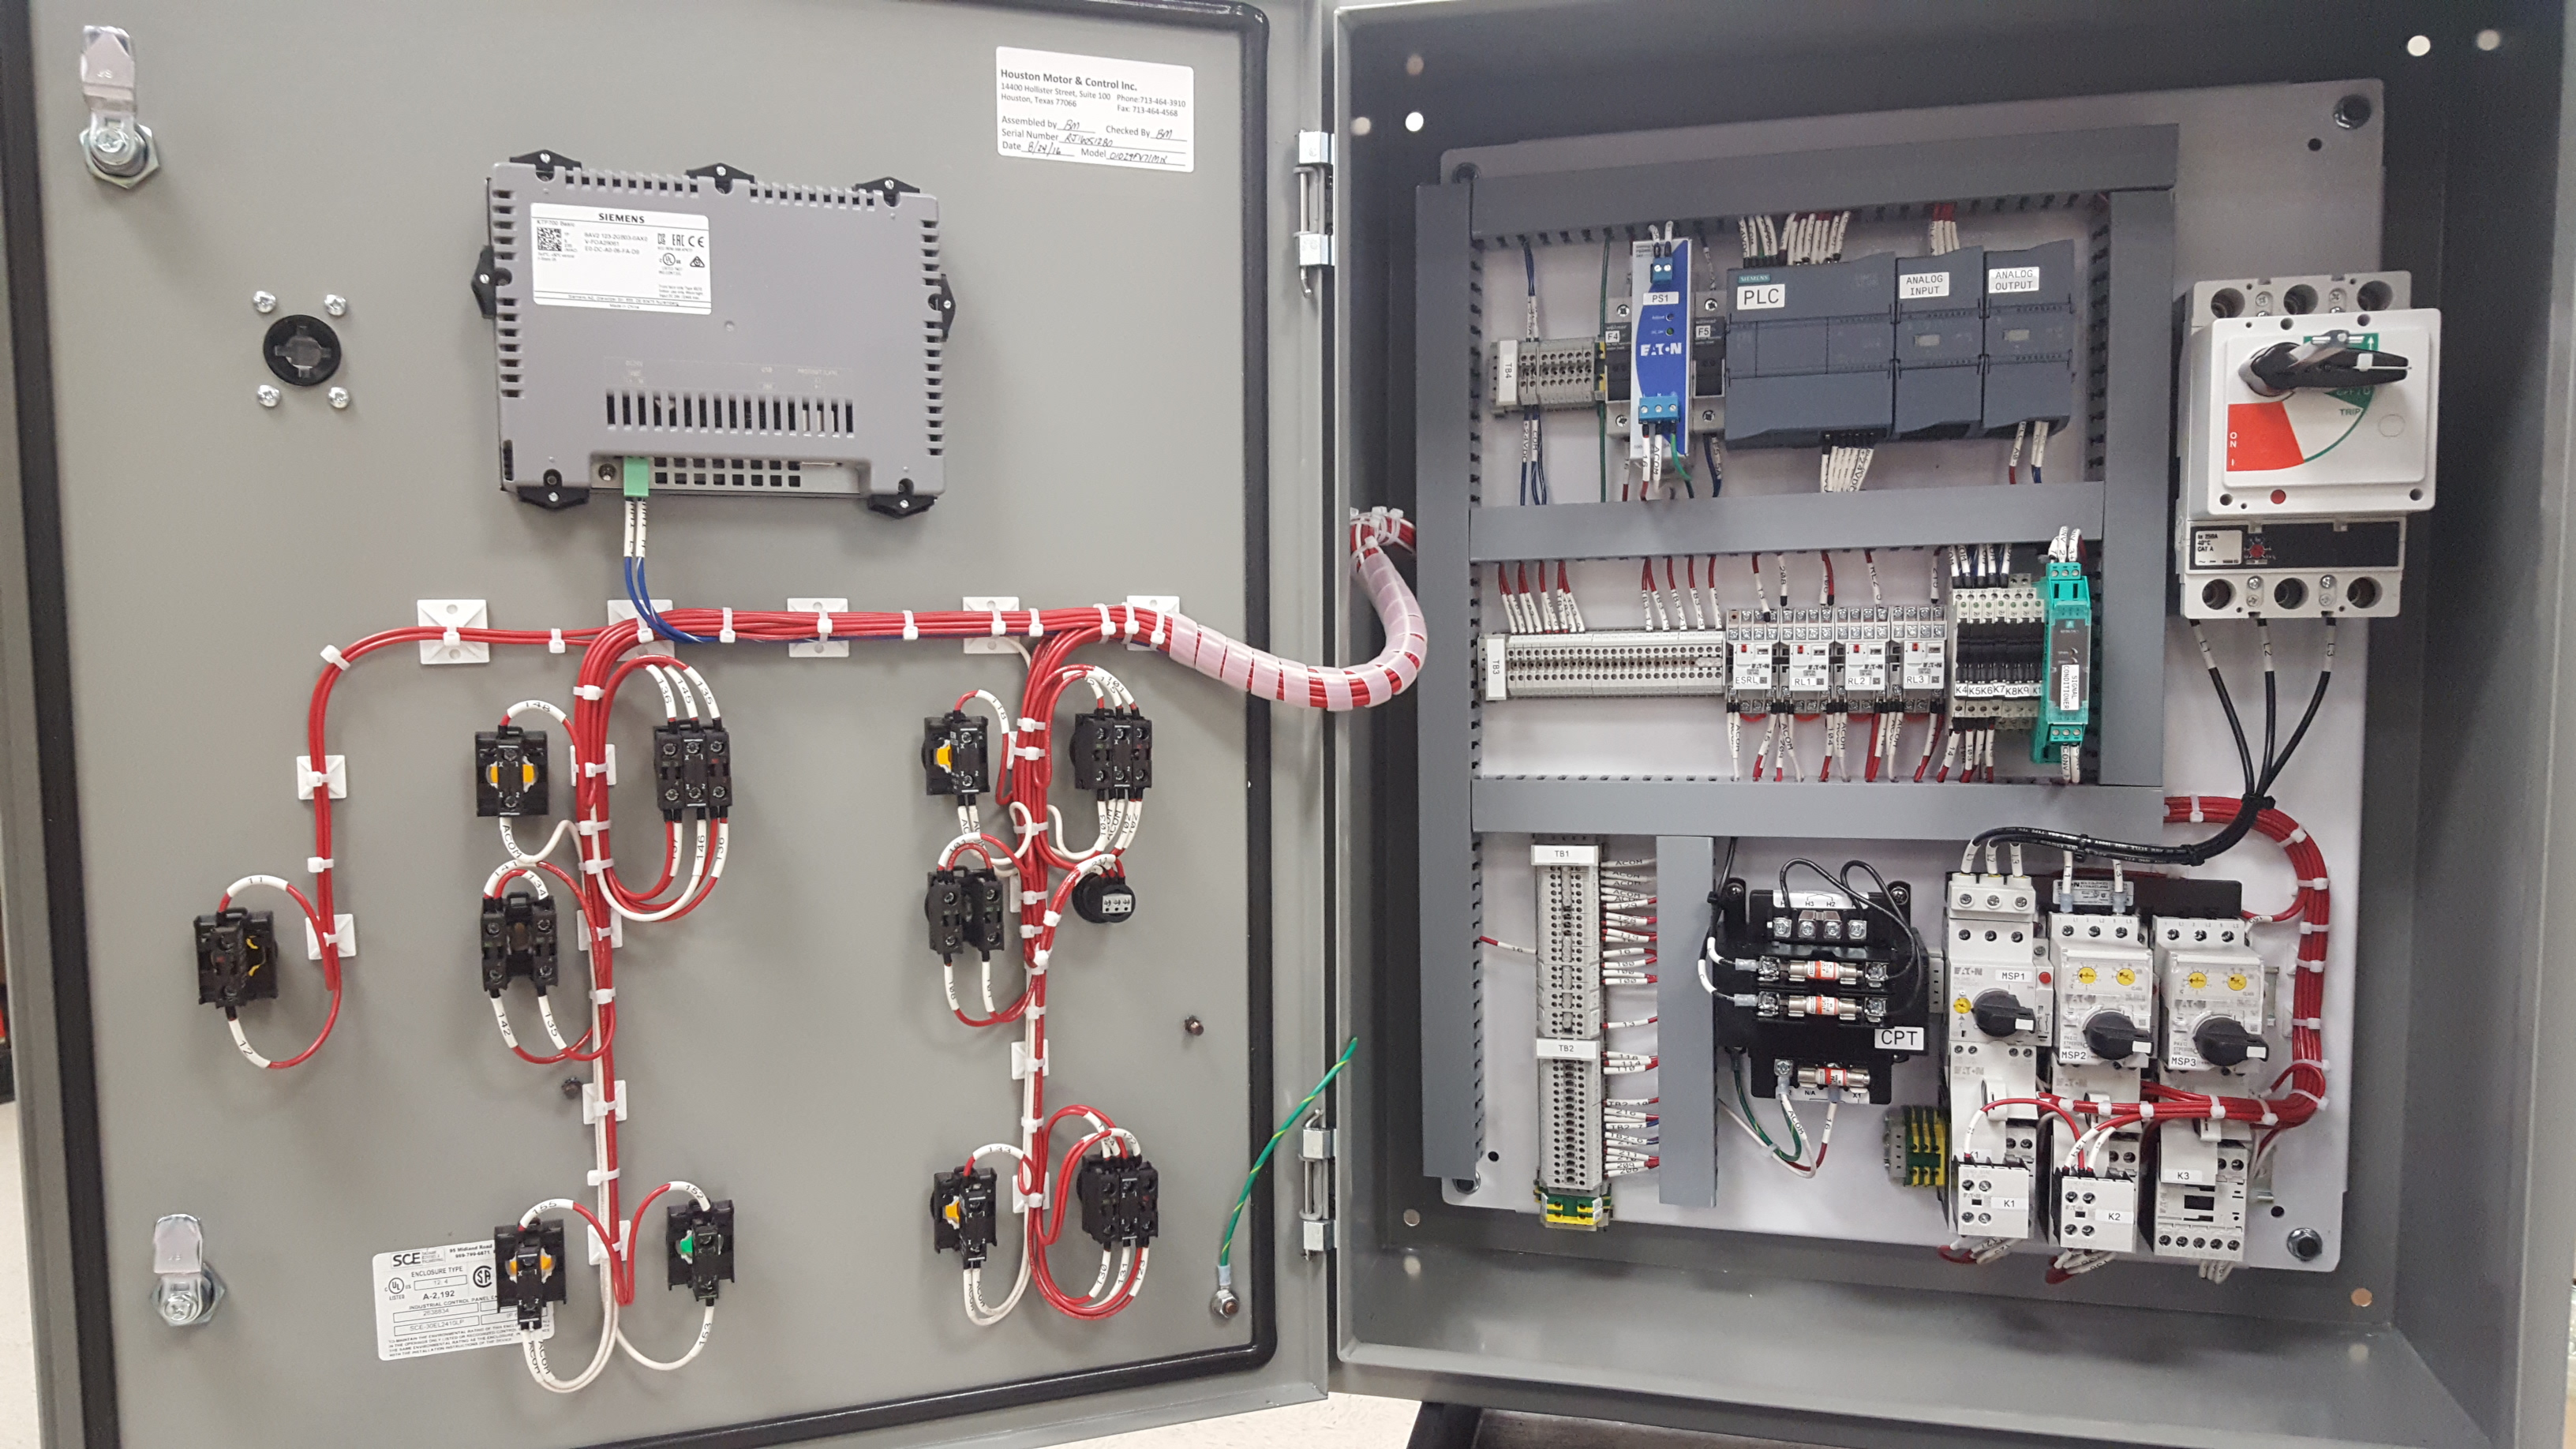 wiring diagram plc panel electrical for water pump motor set control design houston